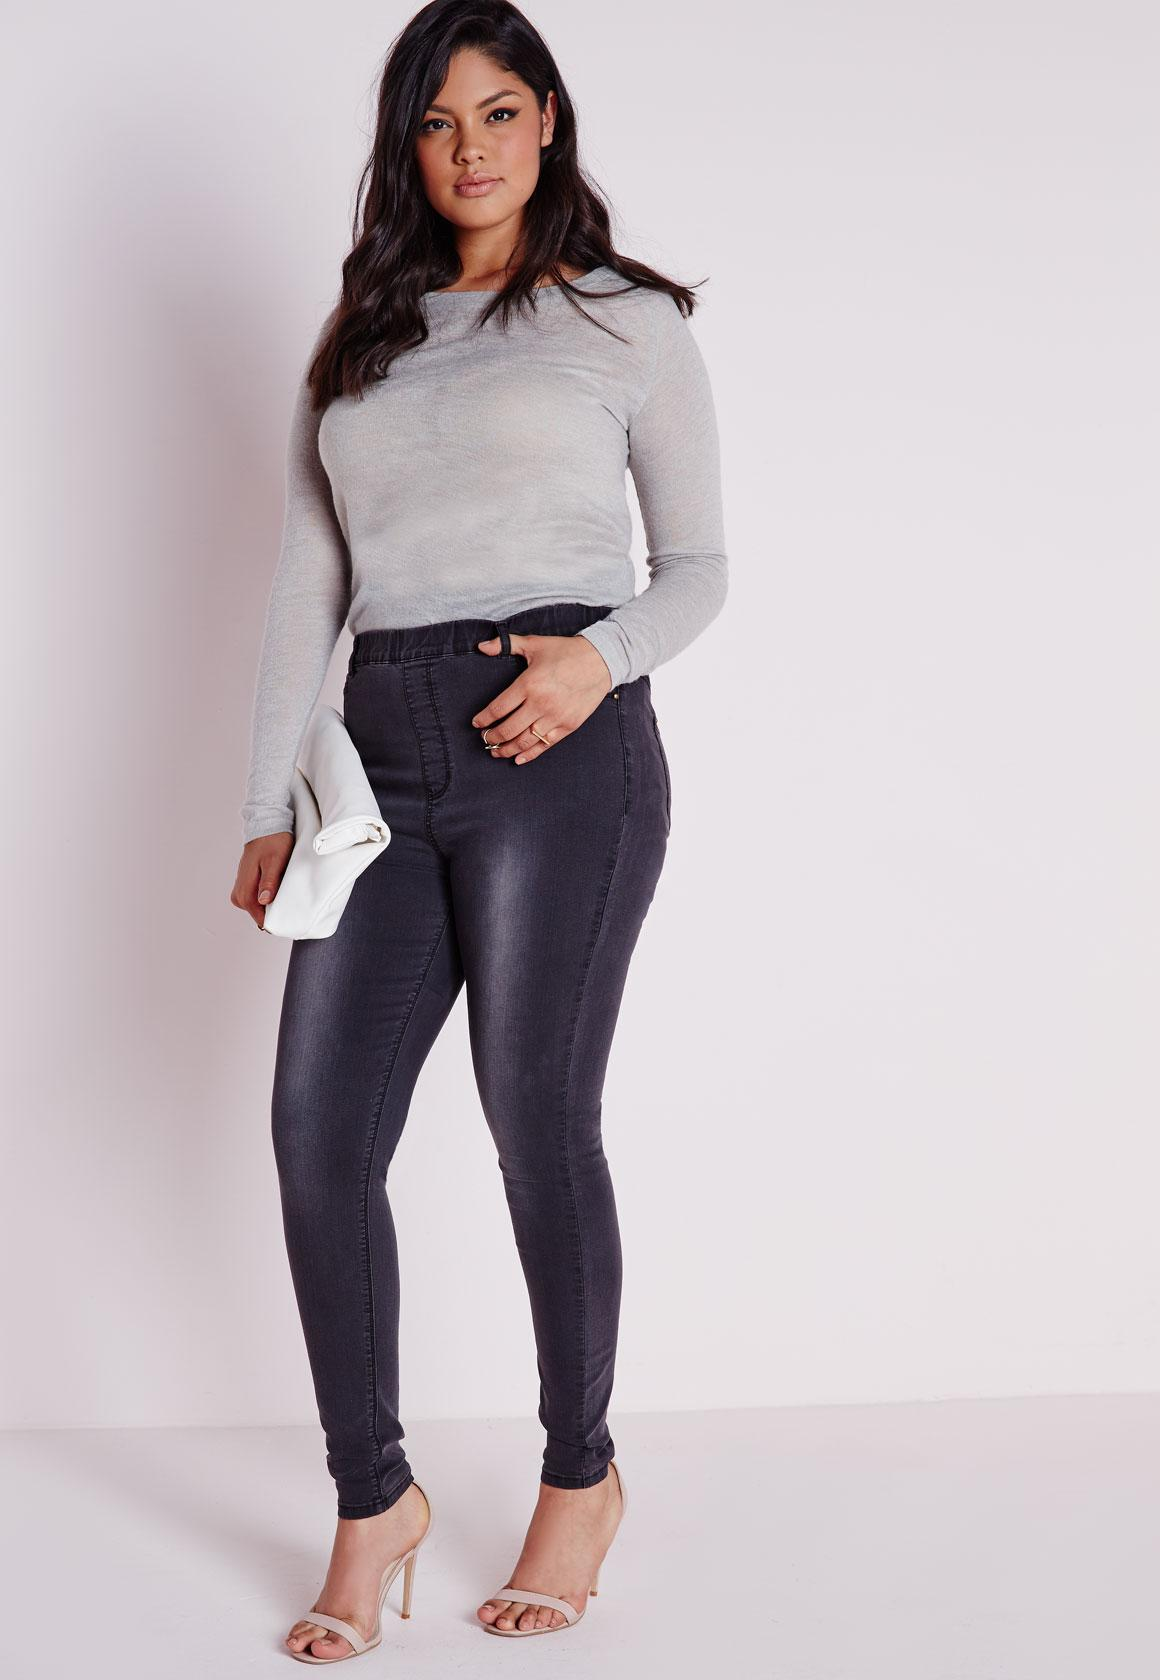 Denim Look Leggings Plus Size